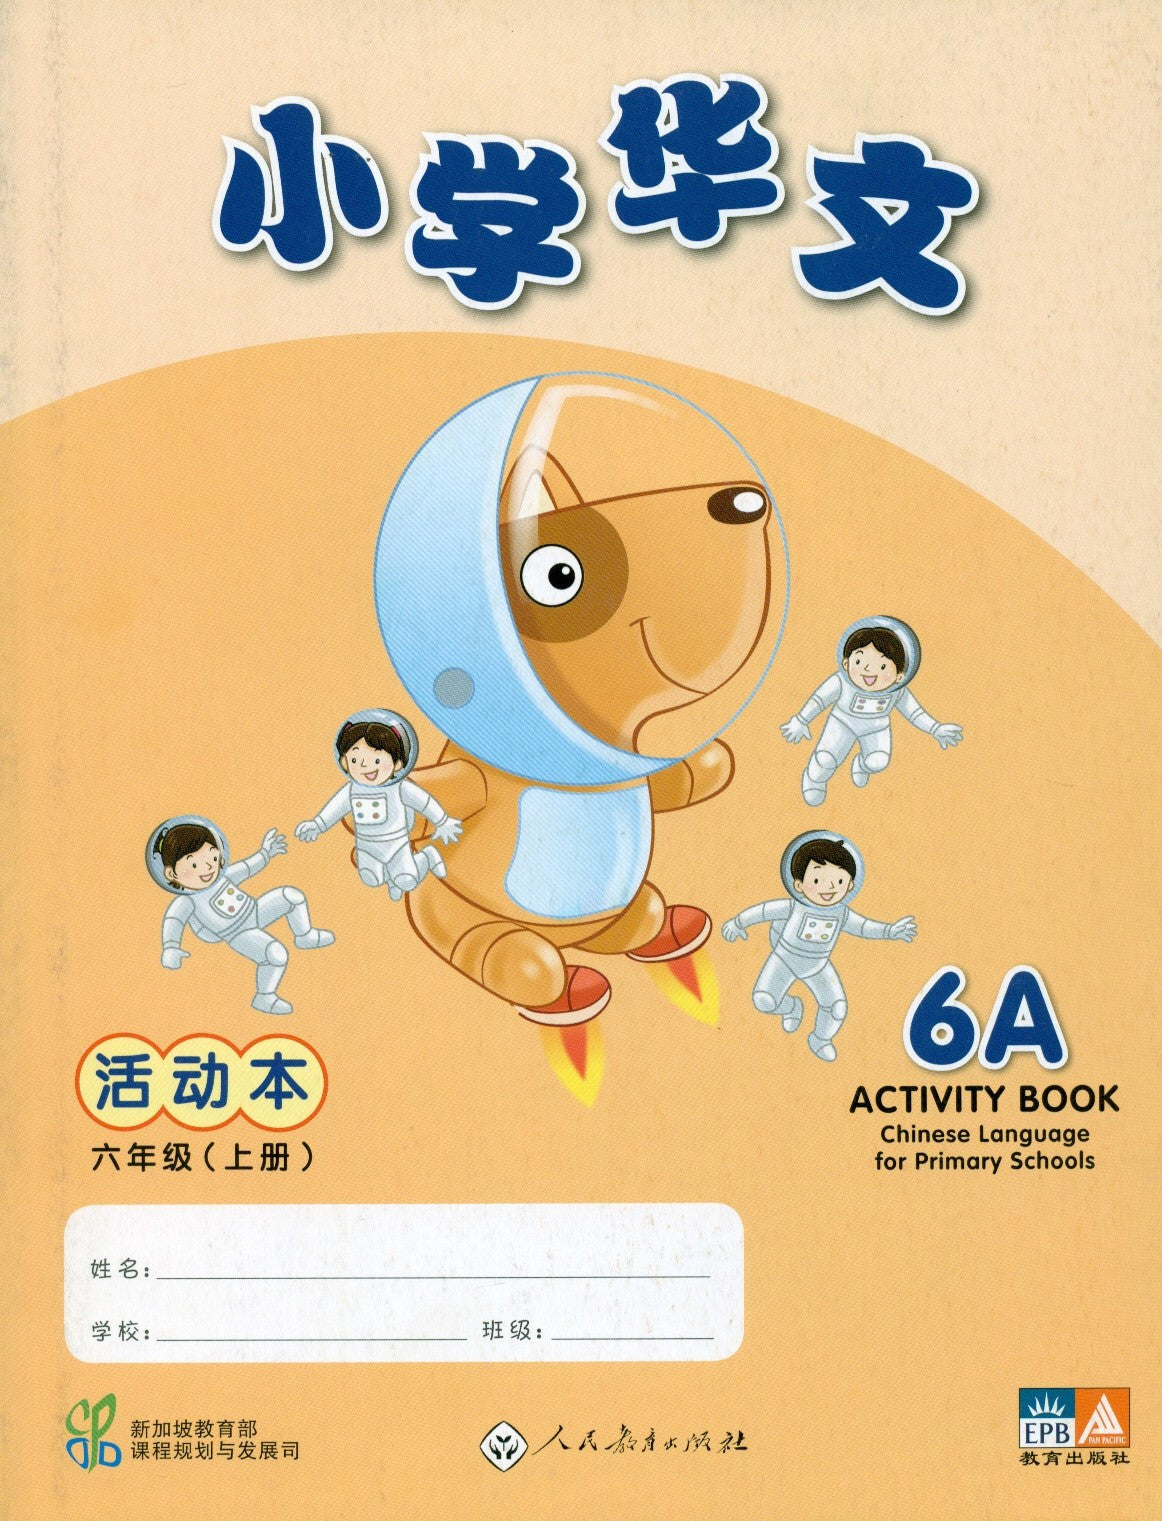 Chinese Language for Primary Schools: Activity Book 6A